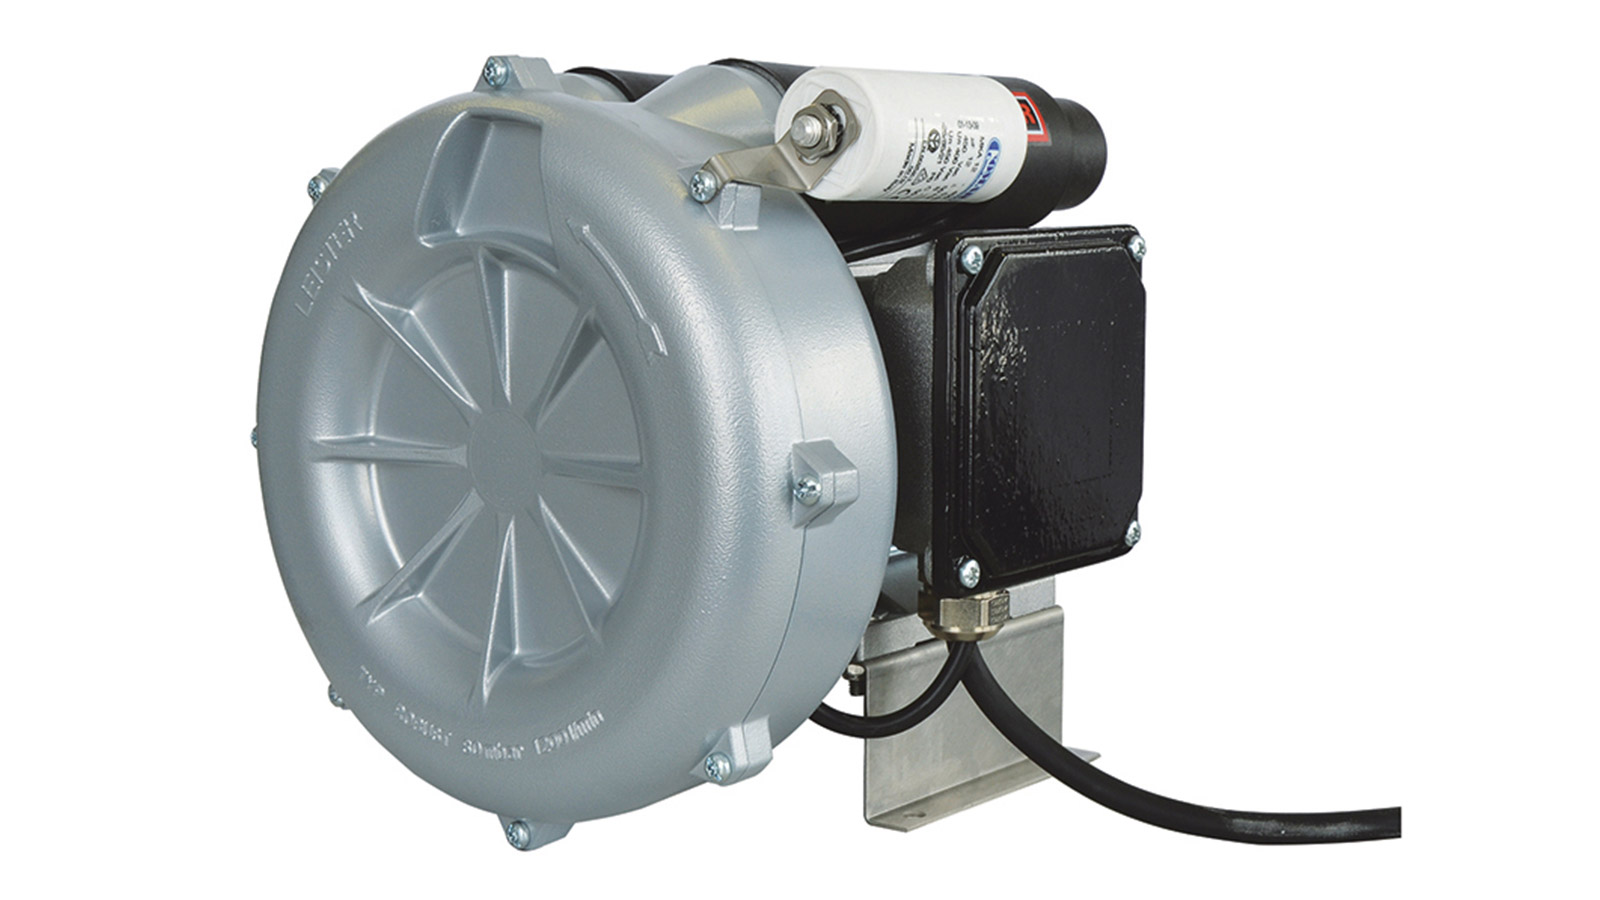 Pvc Fans And Blowers : Blowers